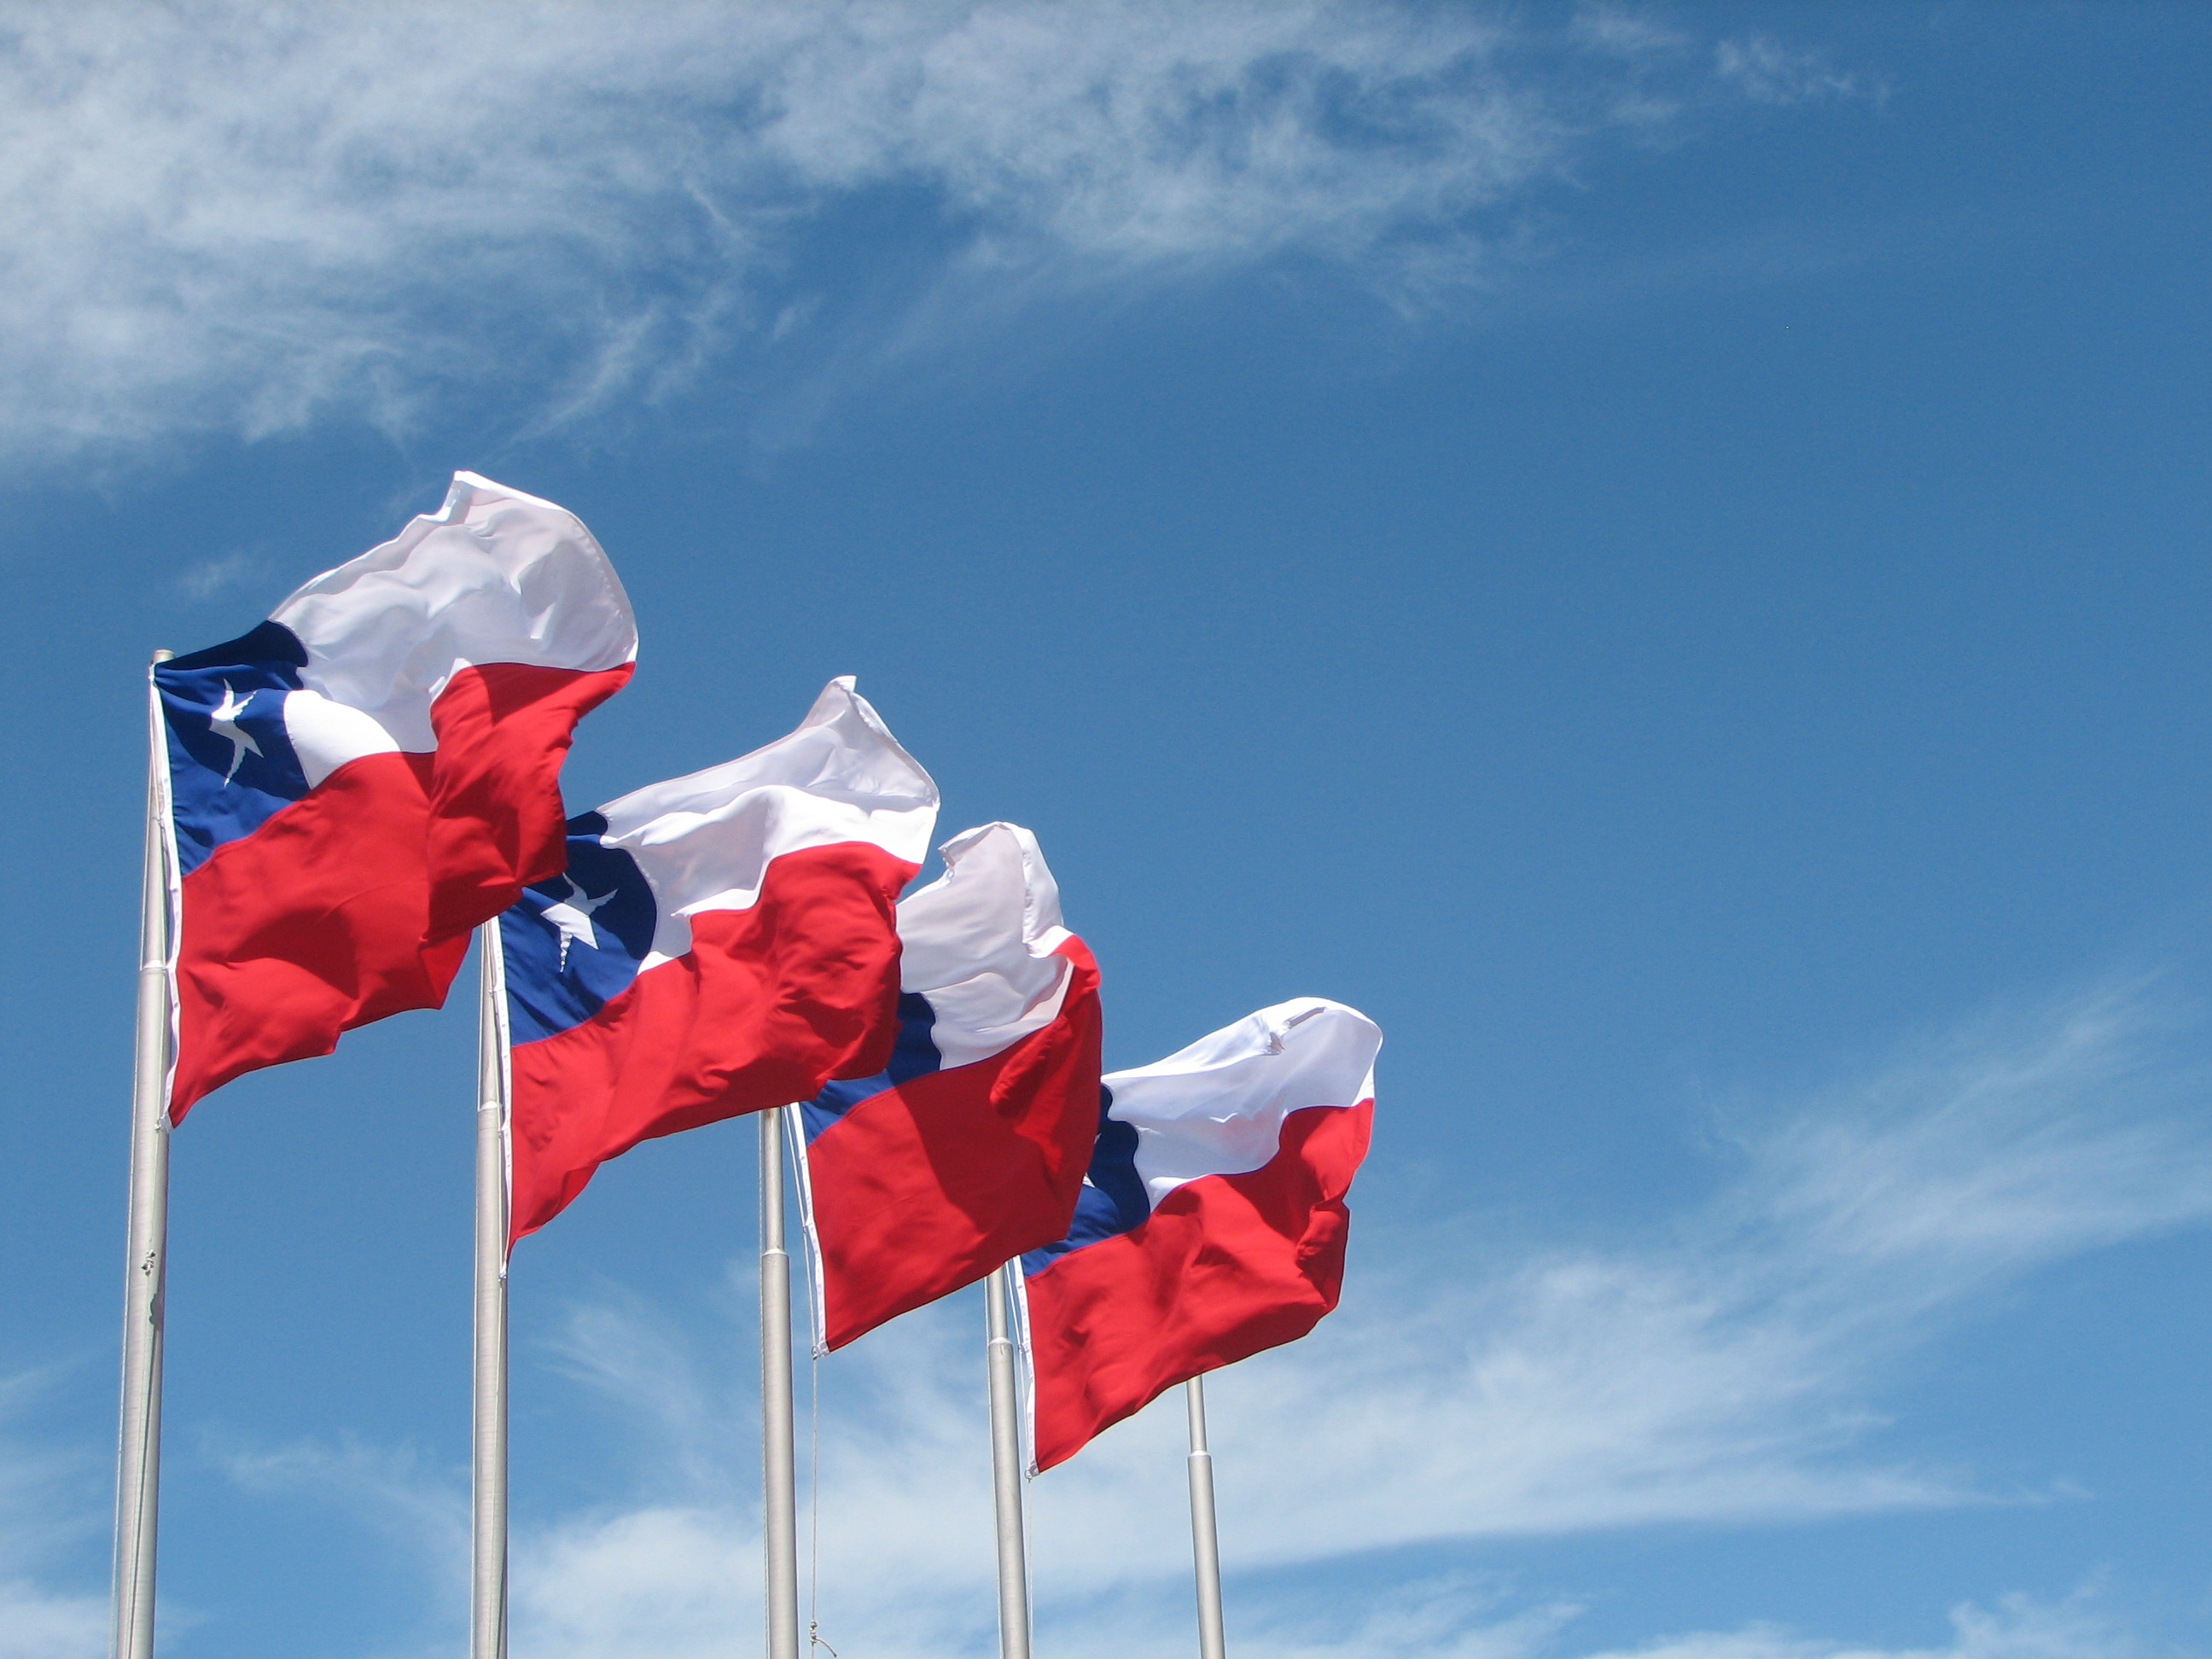 Description Chile Flags In Puerto Montt